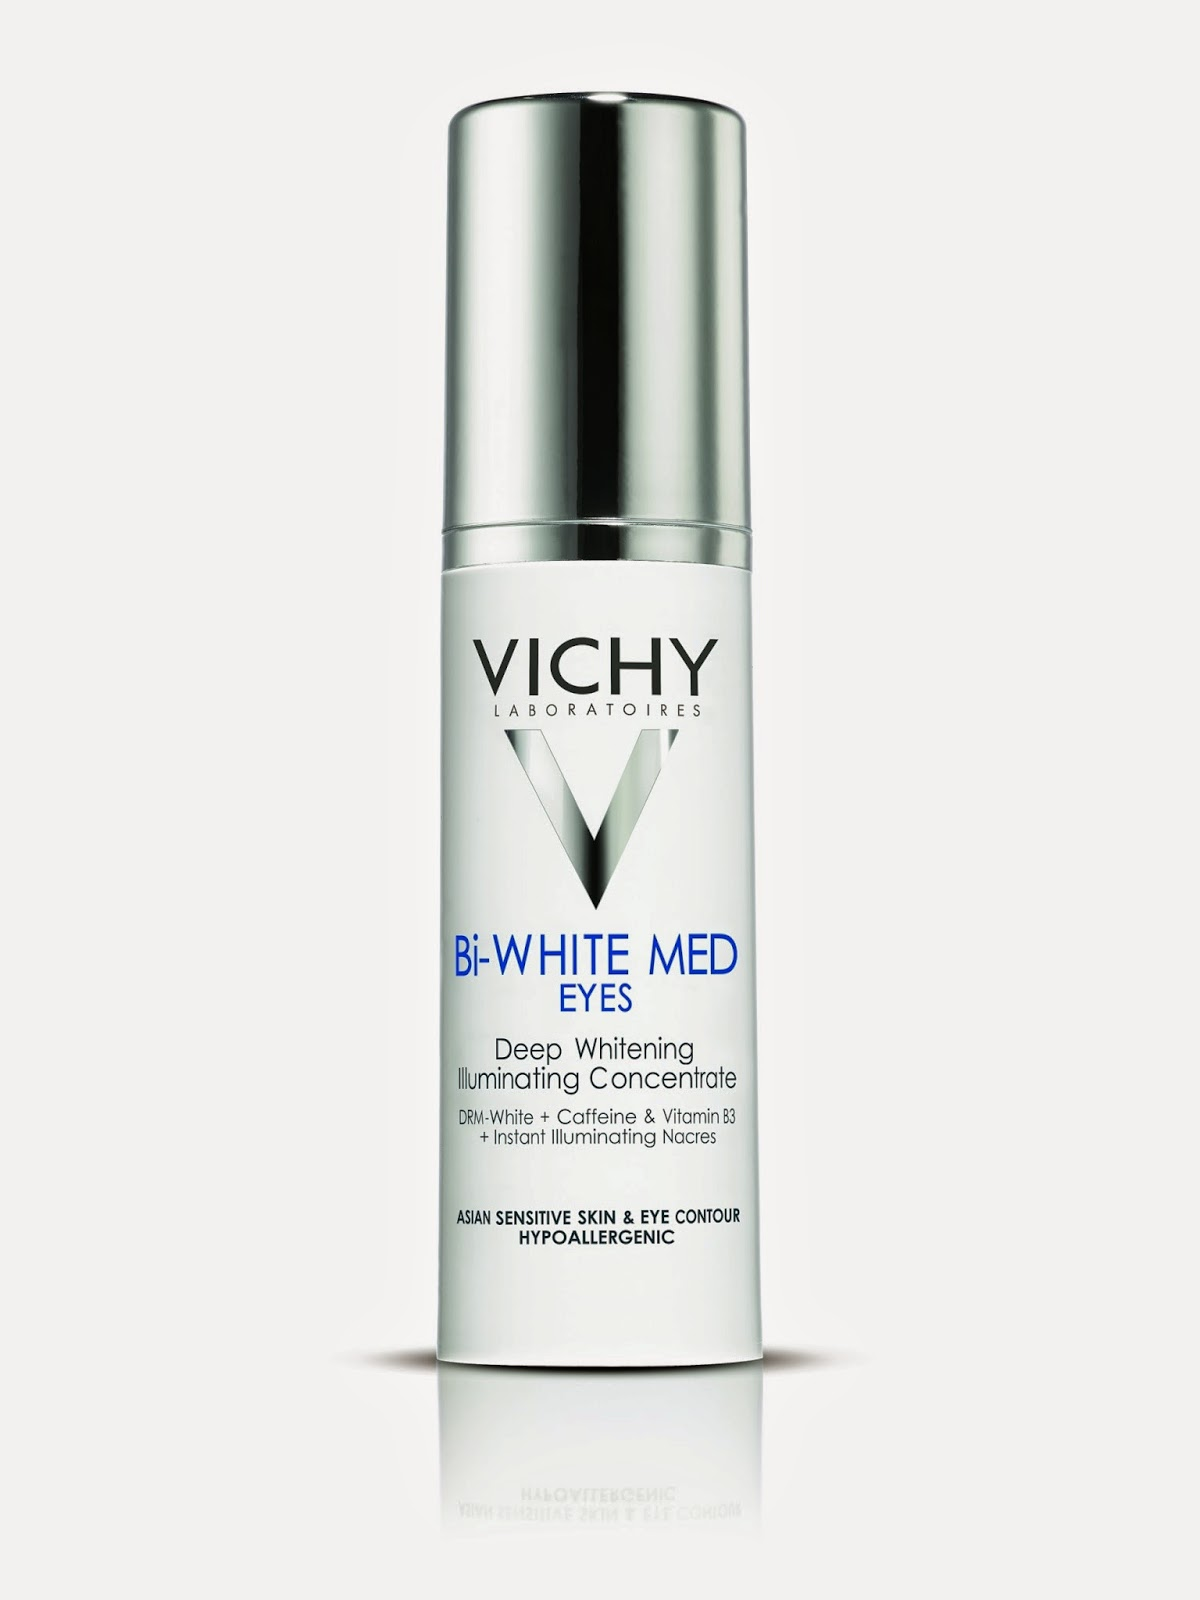 VICHY Bi-White MED Eyes - Bi WHITE MED Eyes is the first illuminating concentrate for an instant and lasting eye look transformation. The deep action of a whitening essence for the 1st time associated with the immediate enlightening power provided by illuminating nacres, to correct in one gesture every eye contour complexion flaws.